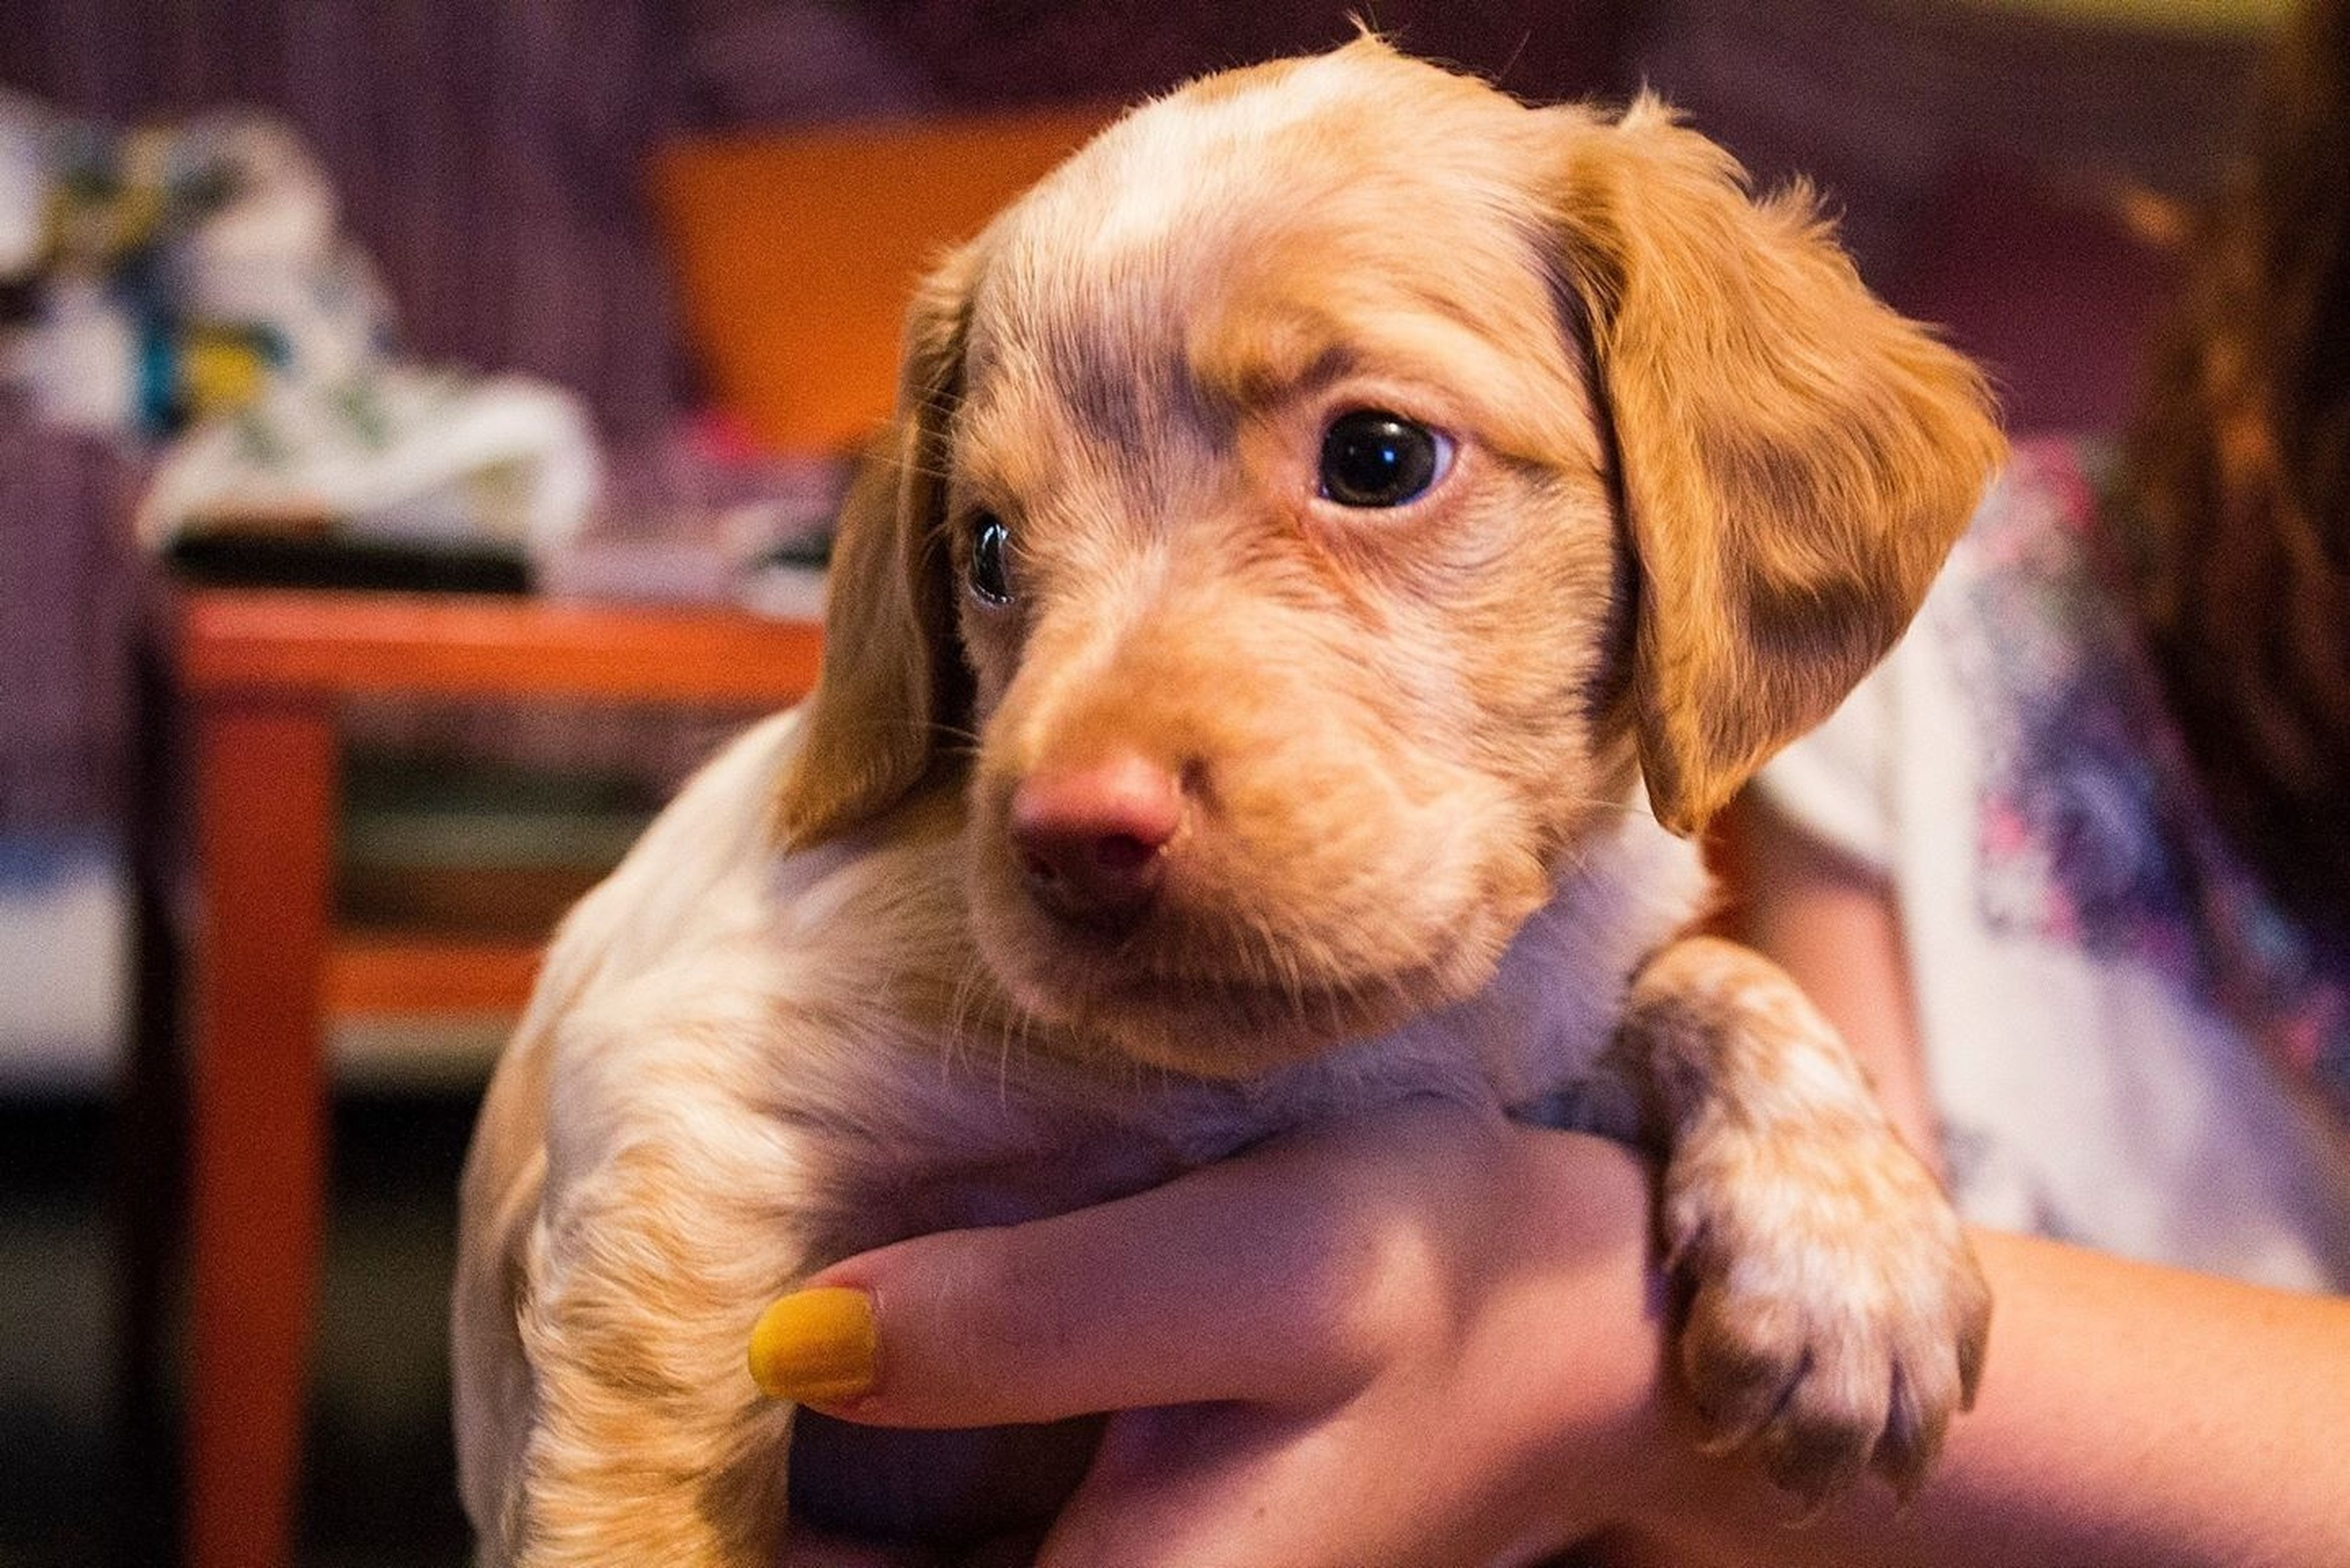 animal themes, one animal, indoors, dog, focus on foreground, pets, domestic animals, close-up, animal head, looking at camera, portrait, mammal, cute, young animal, home interior, front view, looking, holding, animal body part